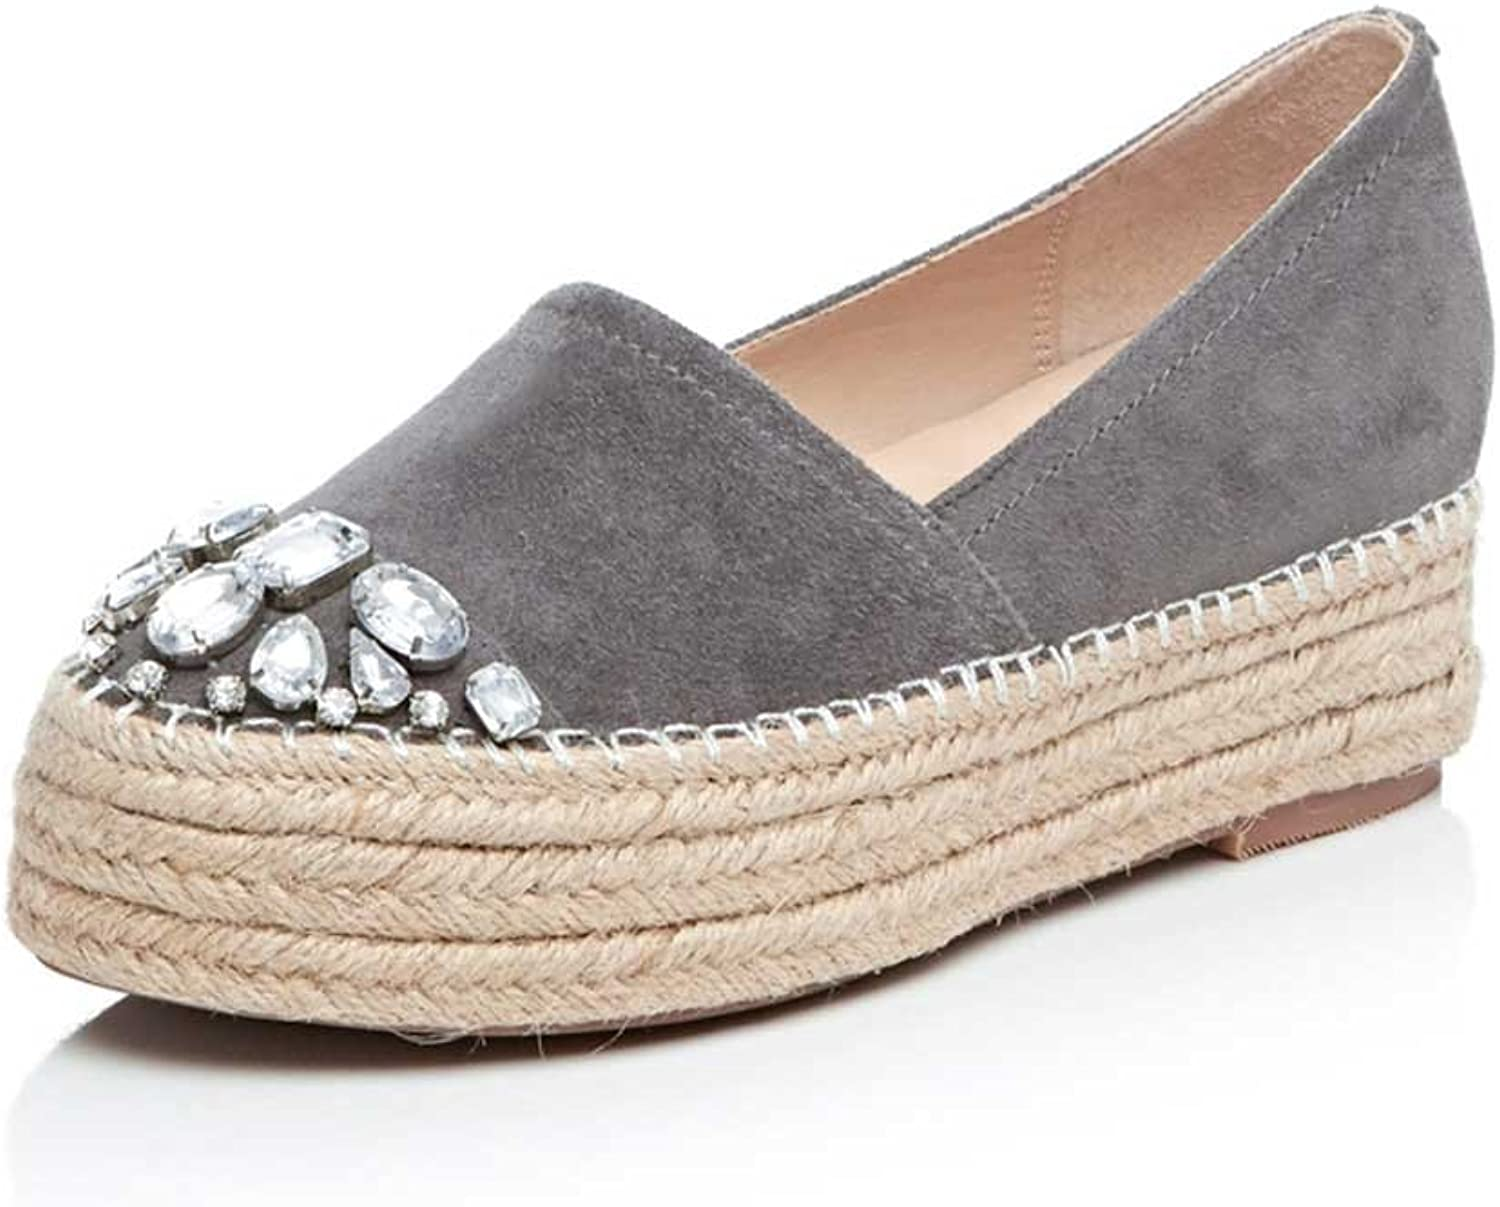 A-BUYBEA Women's Suede Slip-ons Espadrilles Loafers with Rhinestones 4.5-7.5